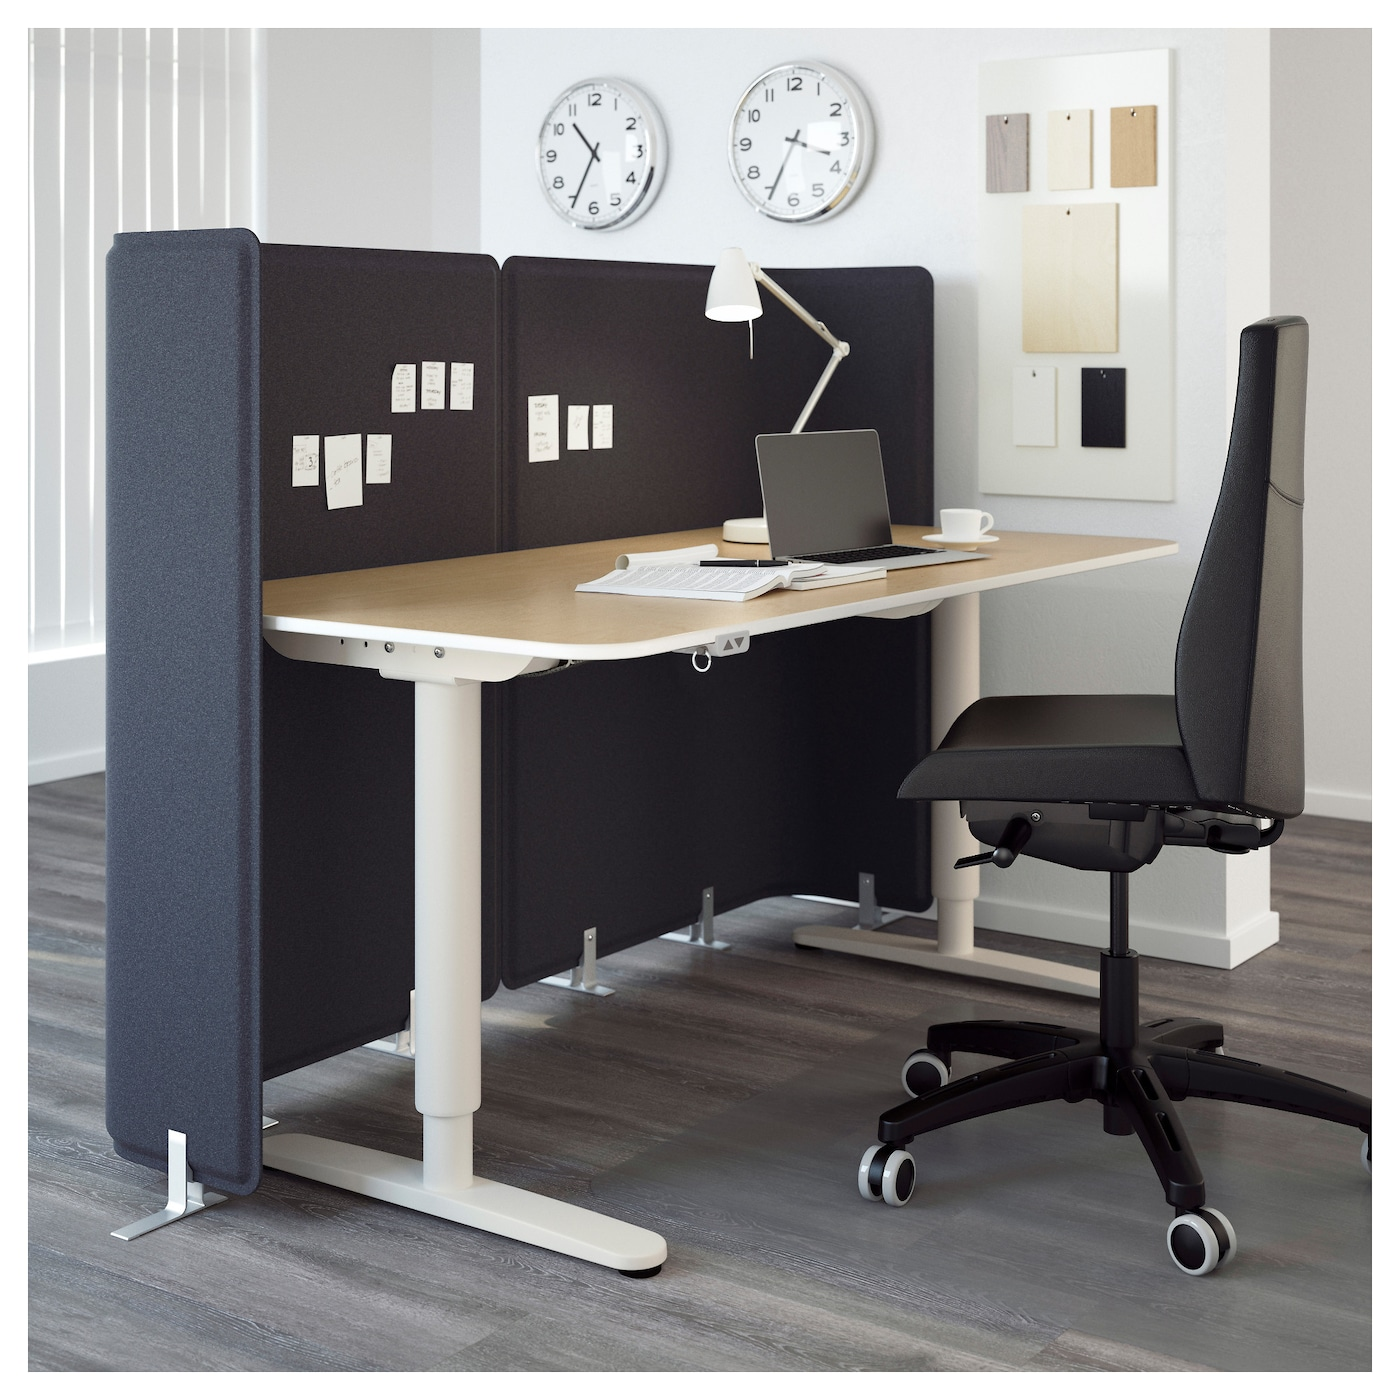 bekant reception desk sit stand birch veneer white 160 x 80 120 cm ikea. Black Bedroom Furniture Sets. Home Design Ideas